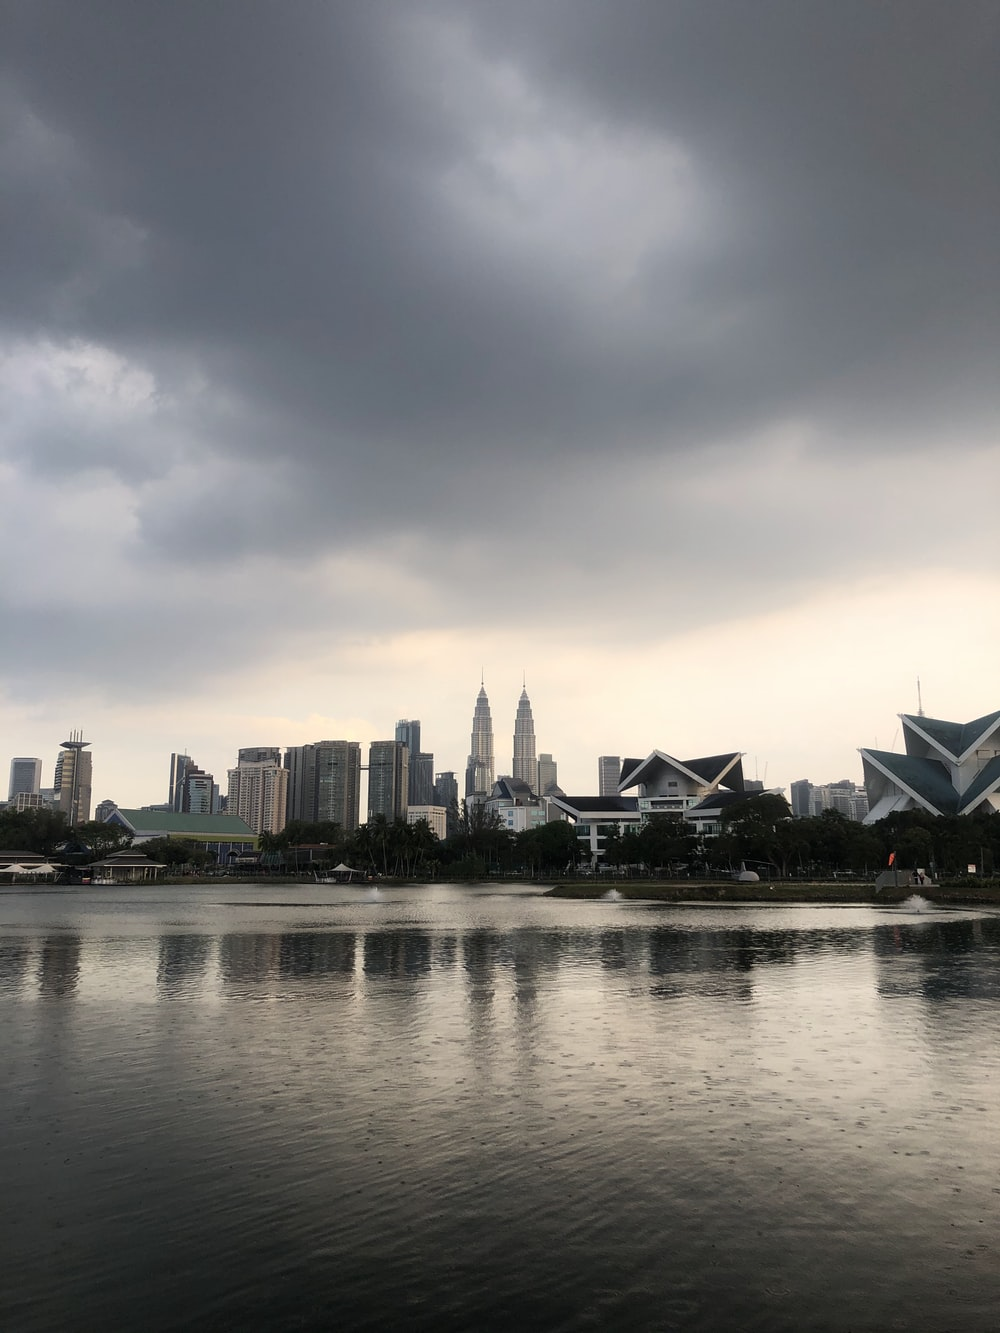 city skyline under cloudy sky during daytime